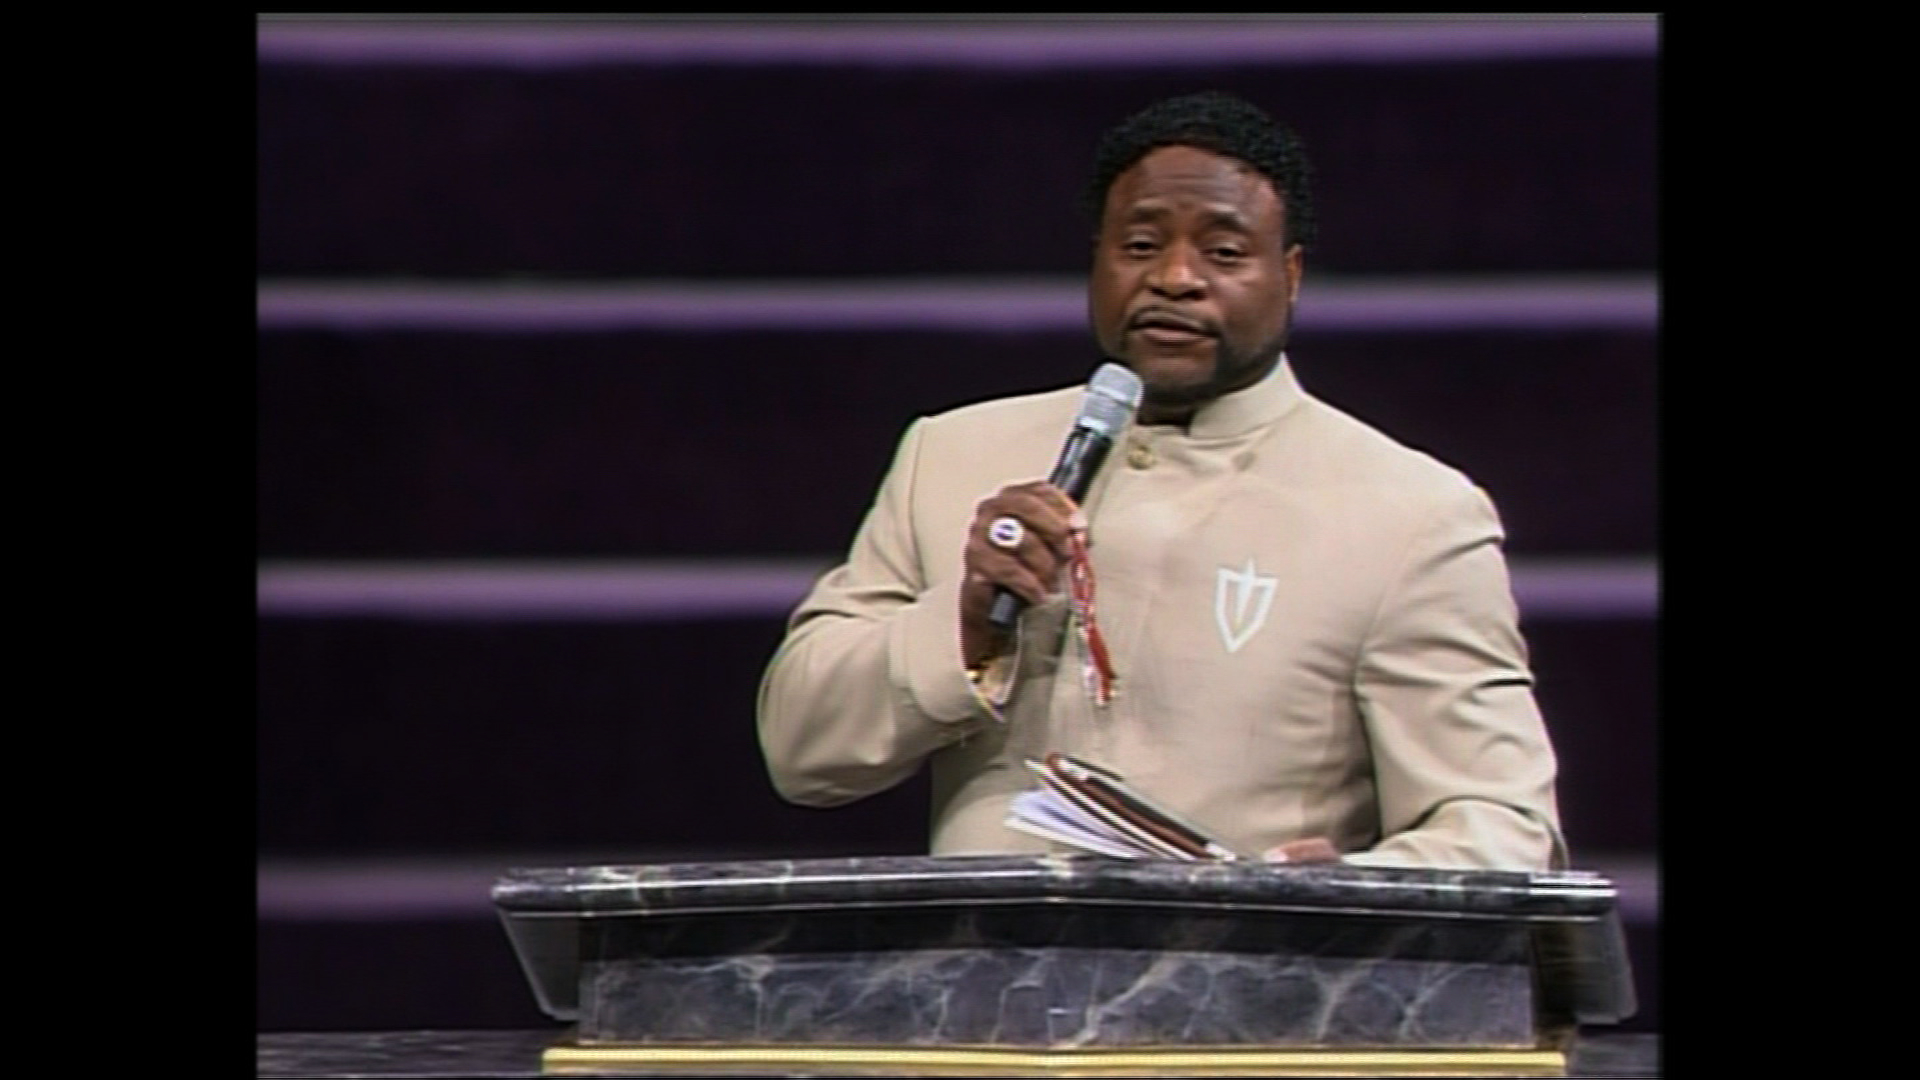 Eddie Long's new churches raise questions about pastors' behavior after scandal